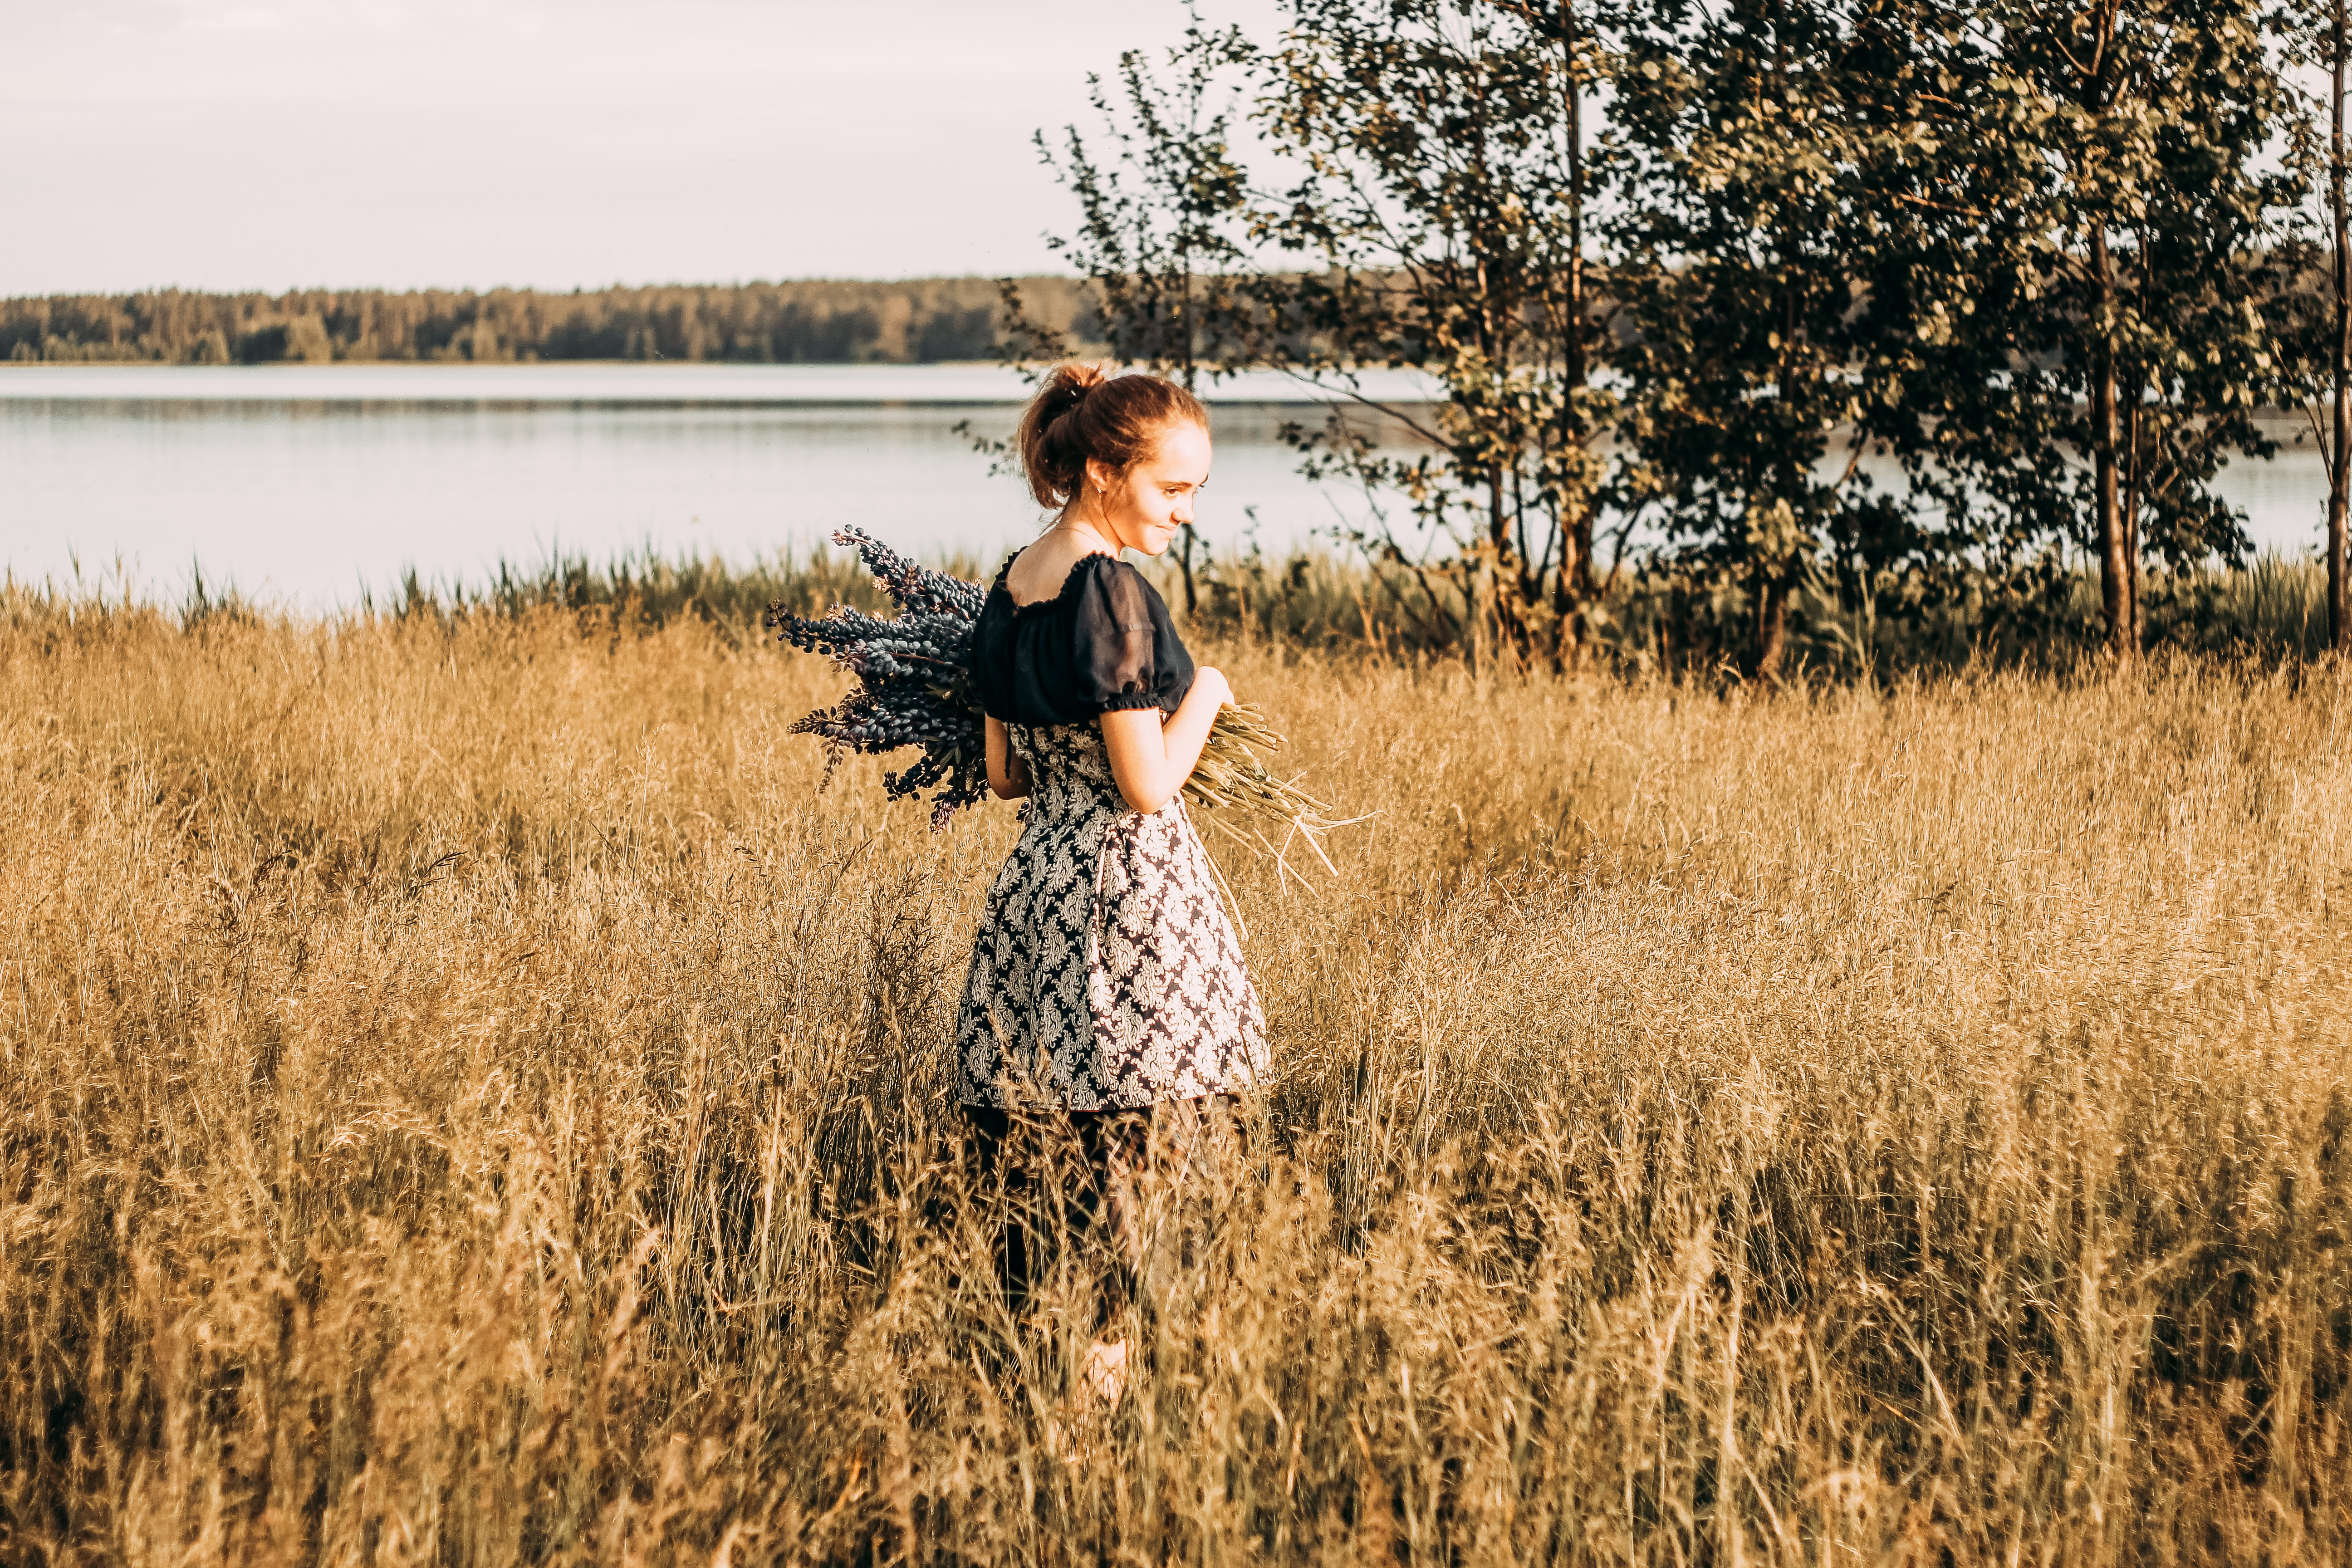 Woman wears black and grey dress stands in field photo